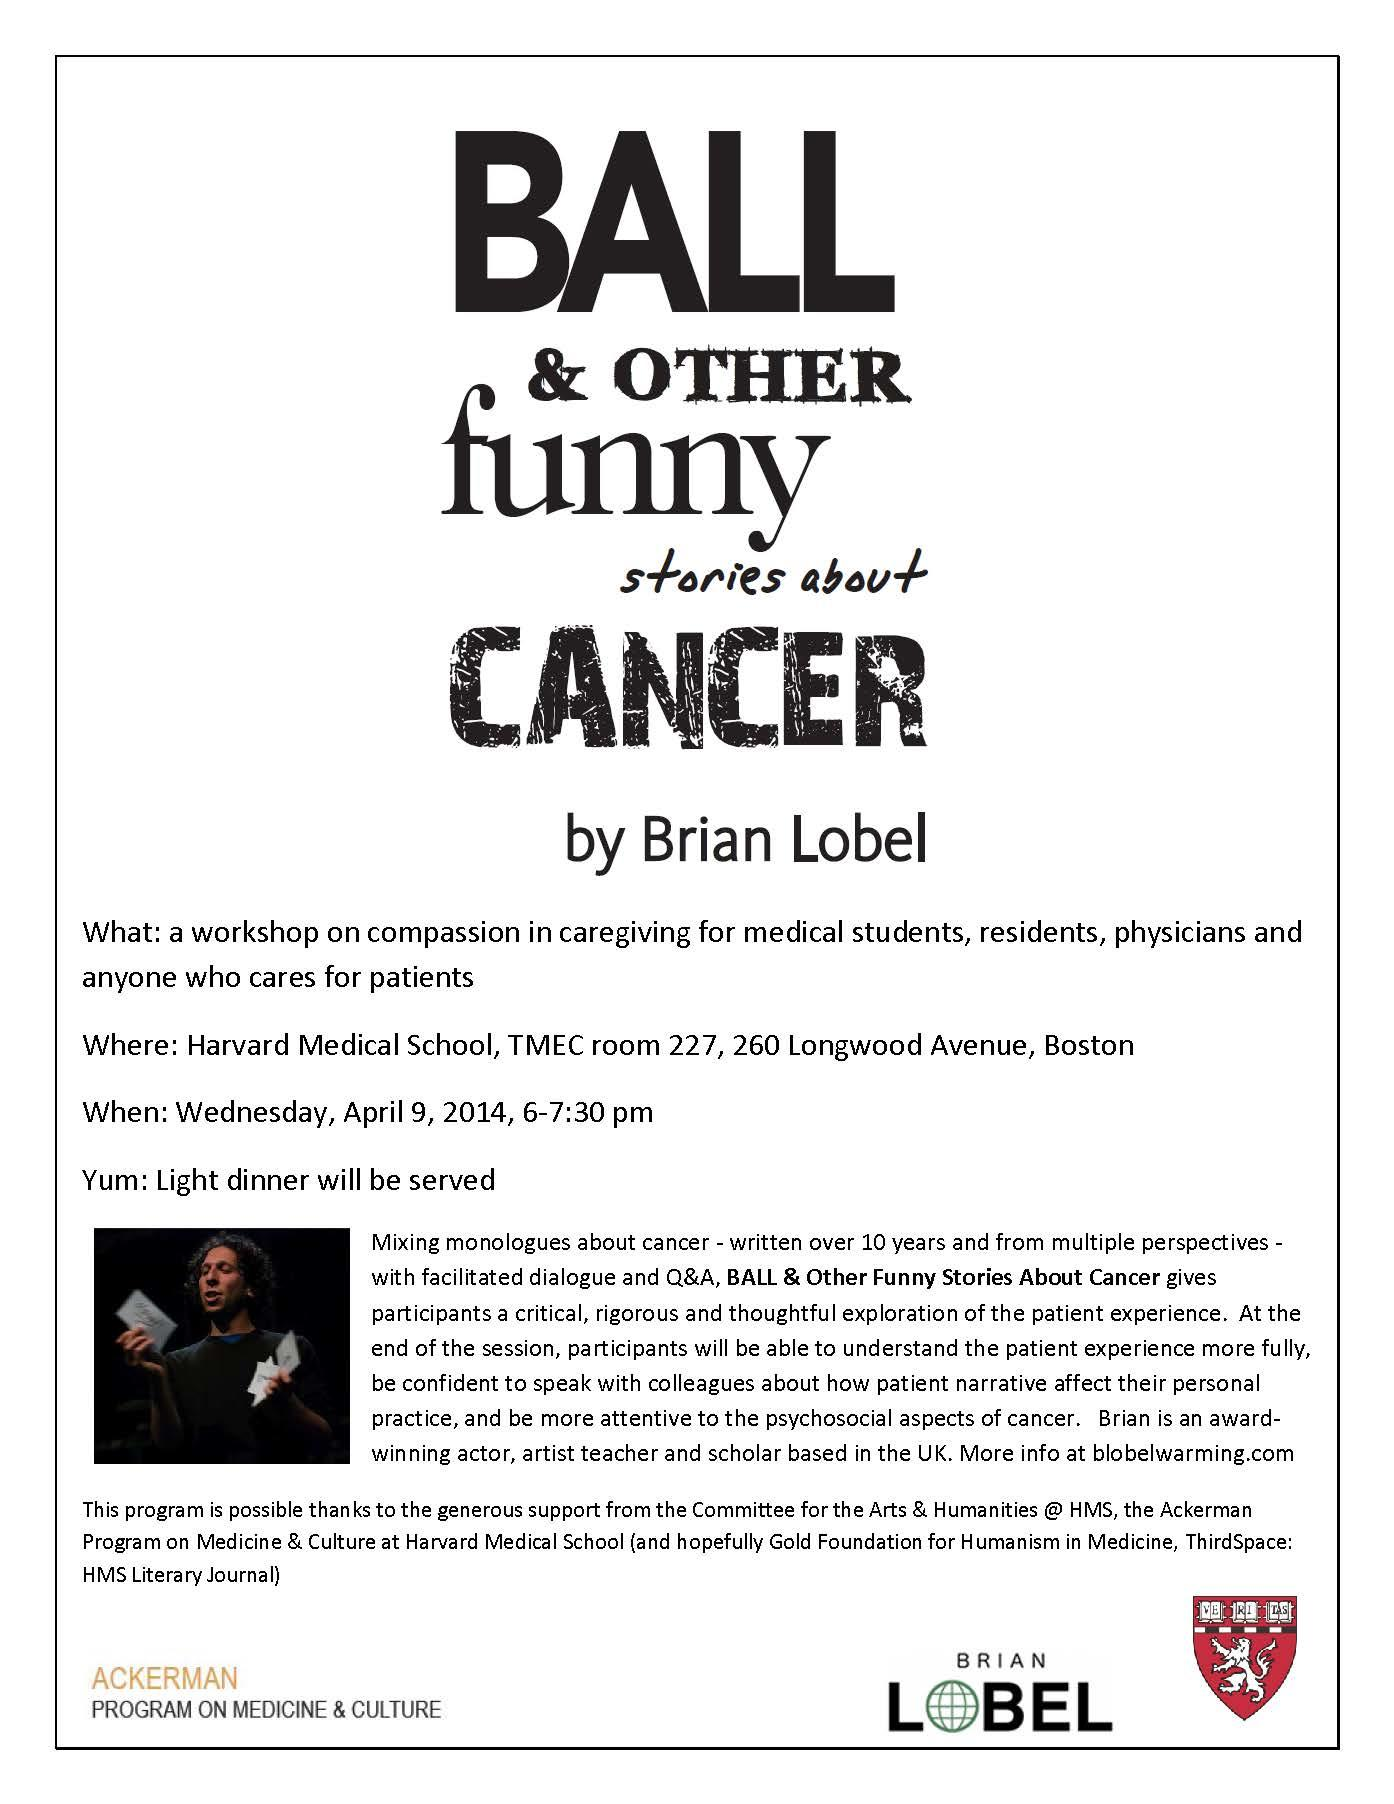 Ball & other funny stories about cancer workshop poster